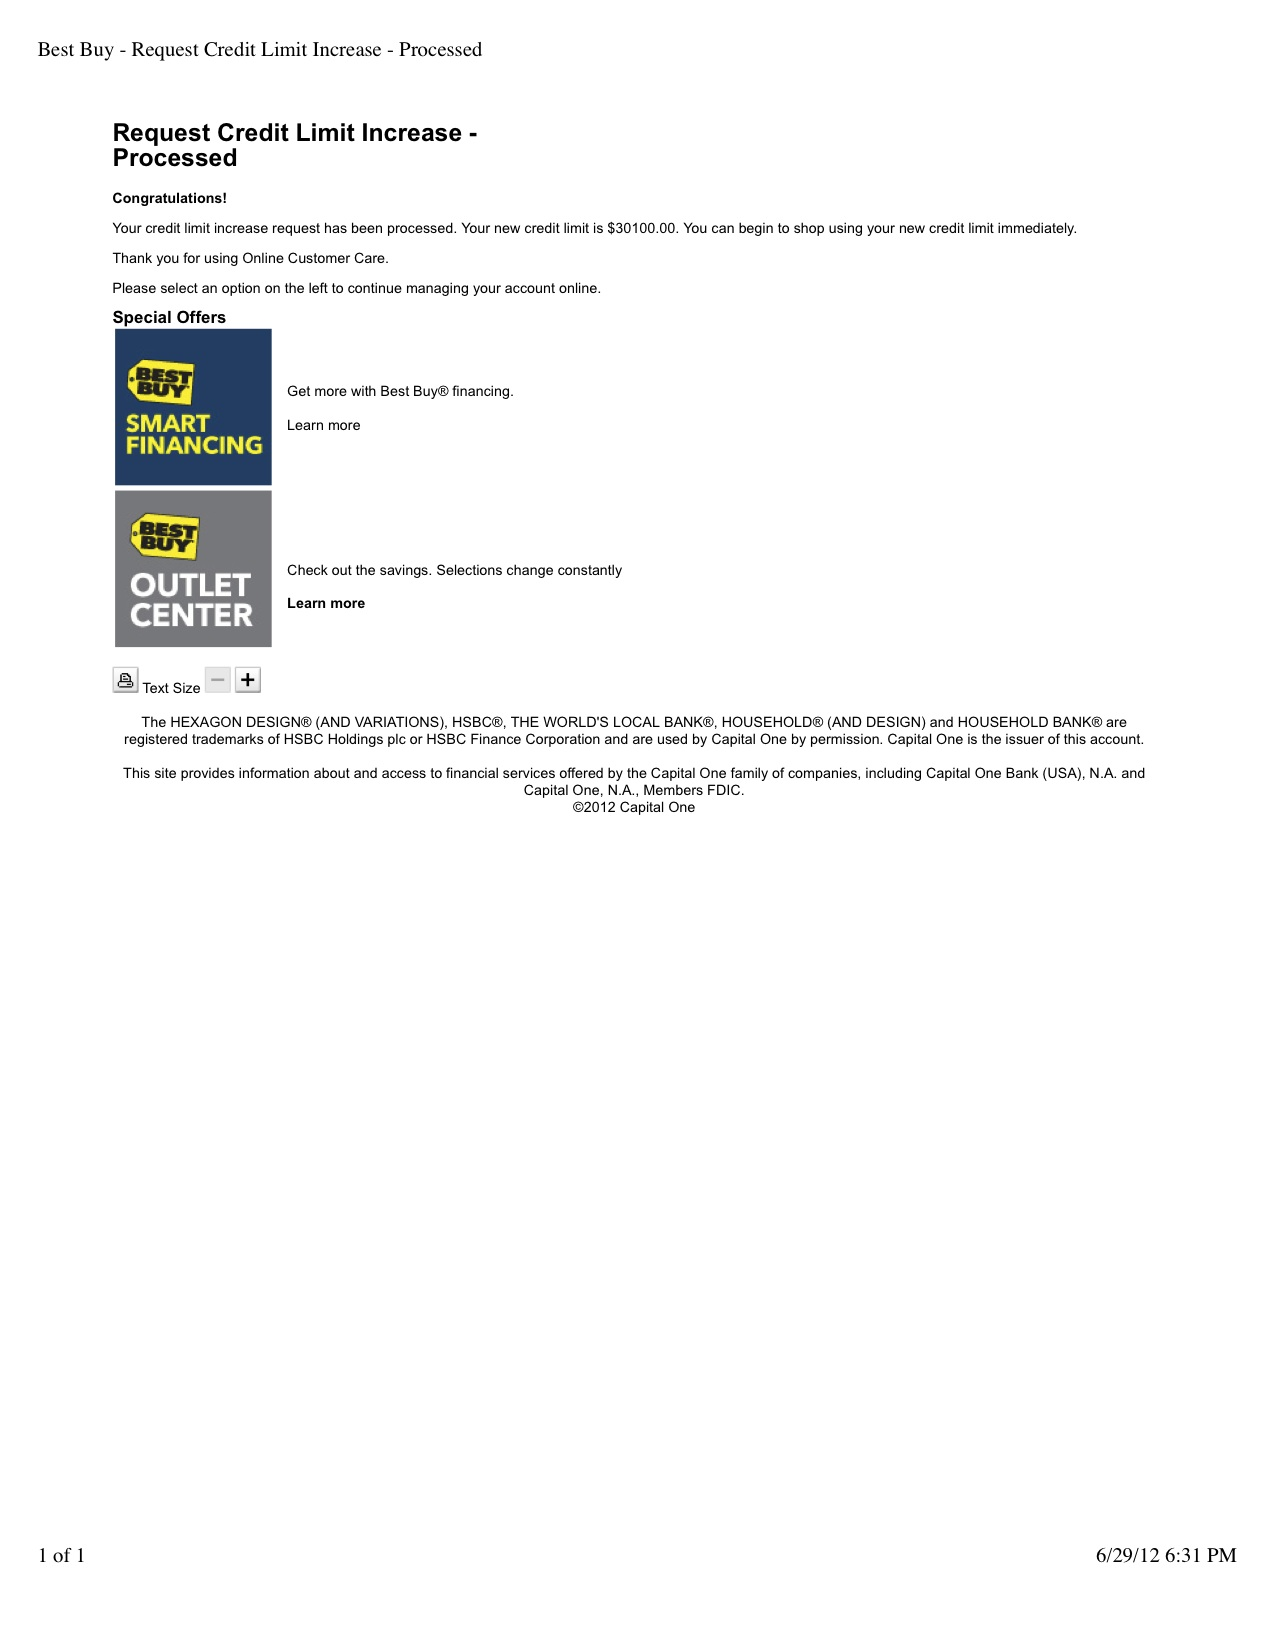 Best Buy - Request Credit Limit Increase1- 06292012.png